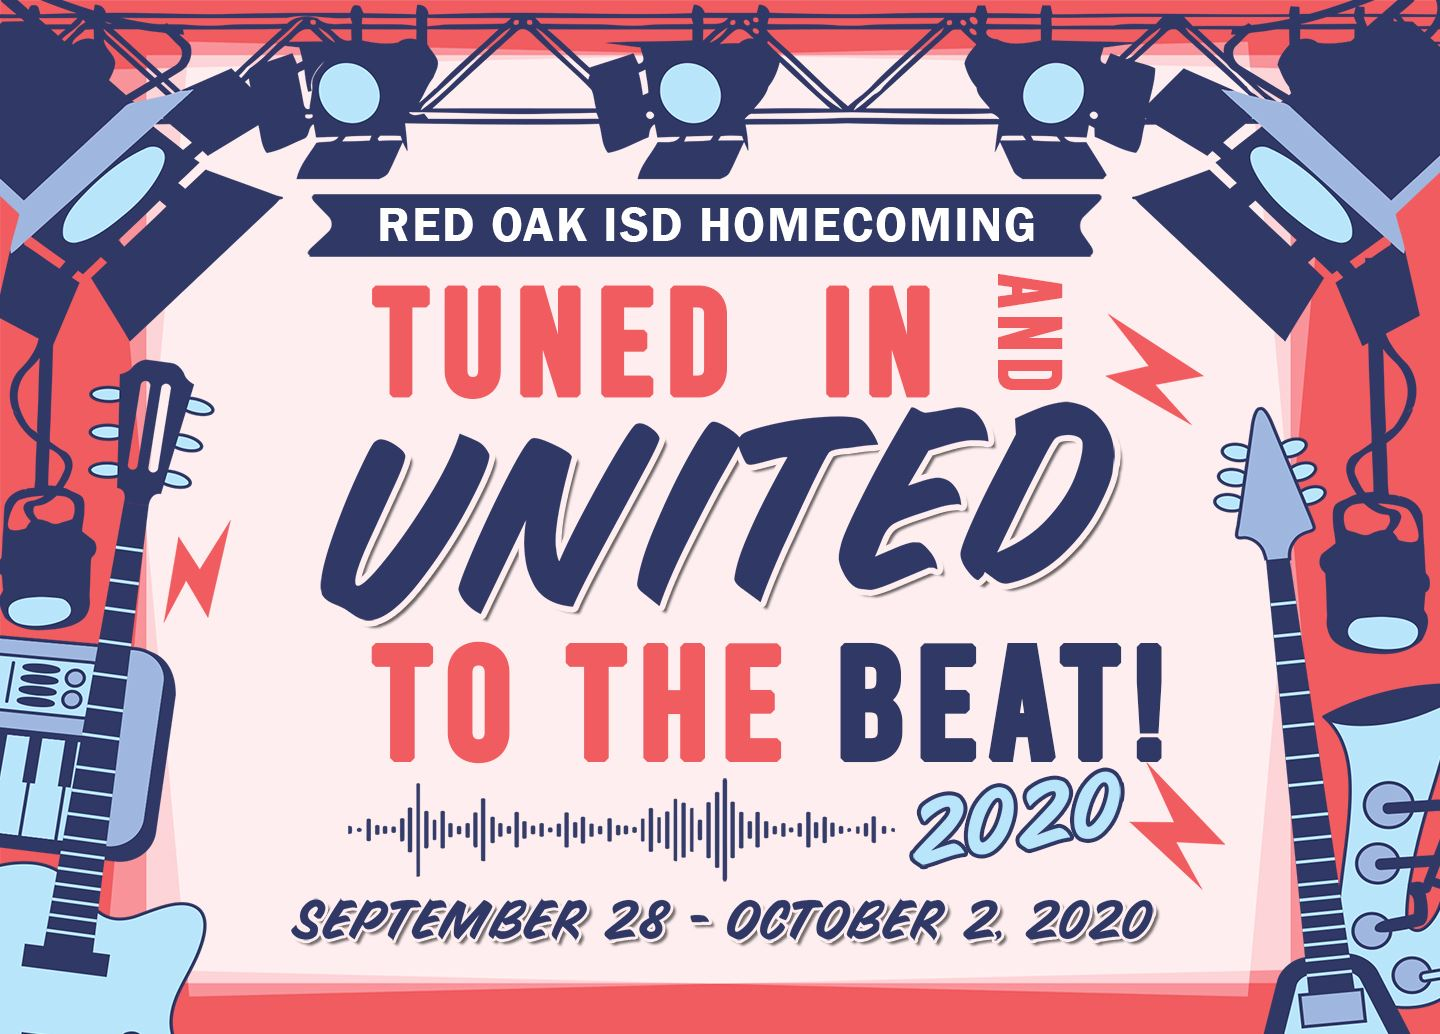 Red Oak ISD Homecoming Sept. 28-Oct. 2, 2020: Tuned in and United to the Beat